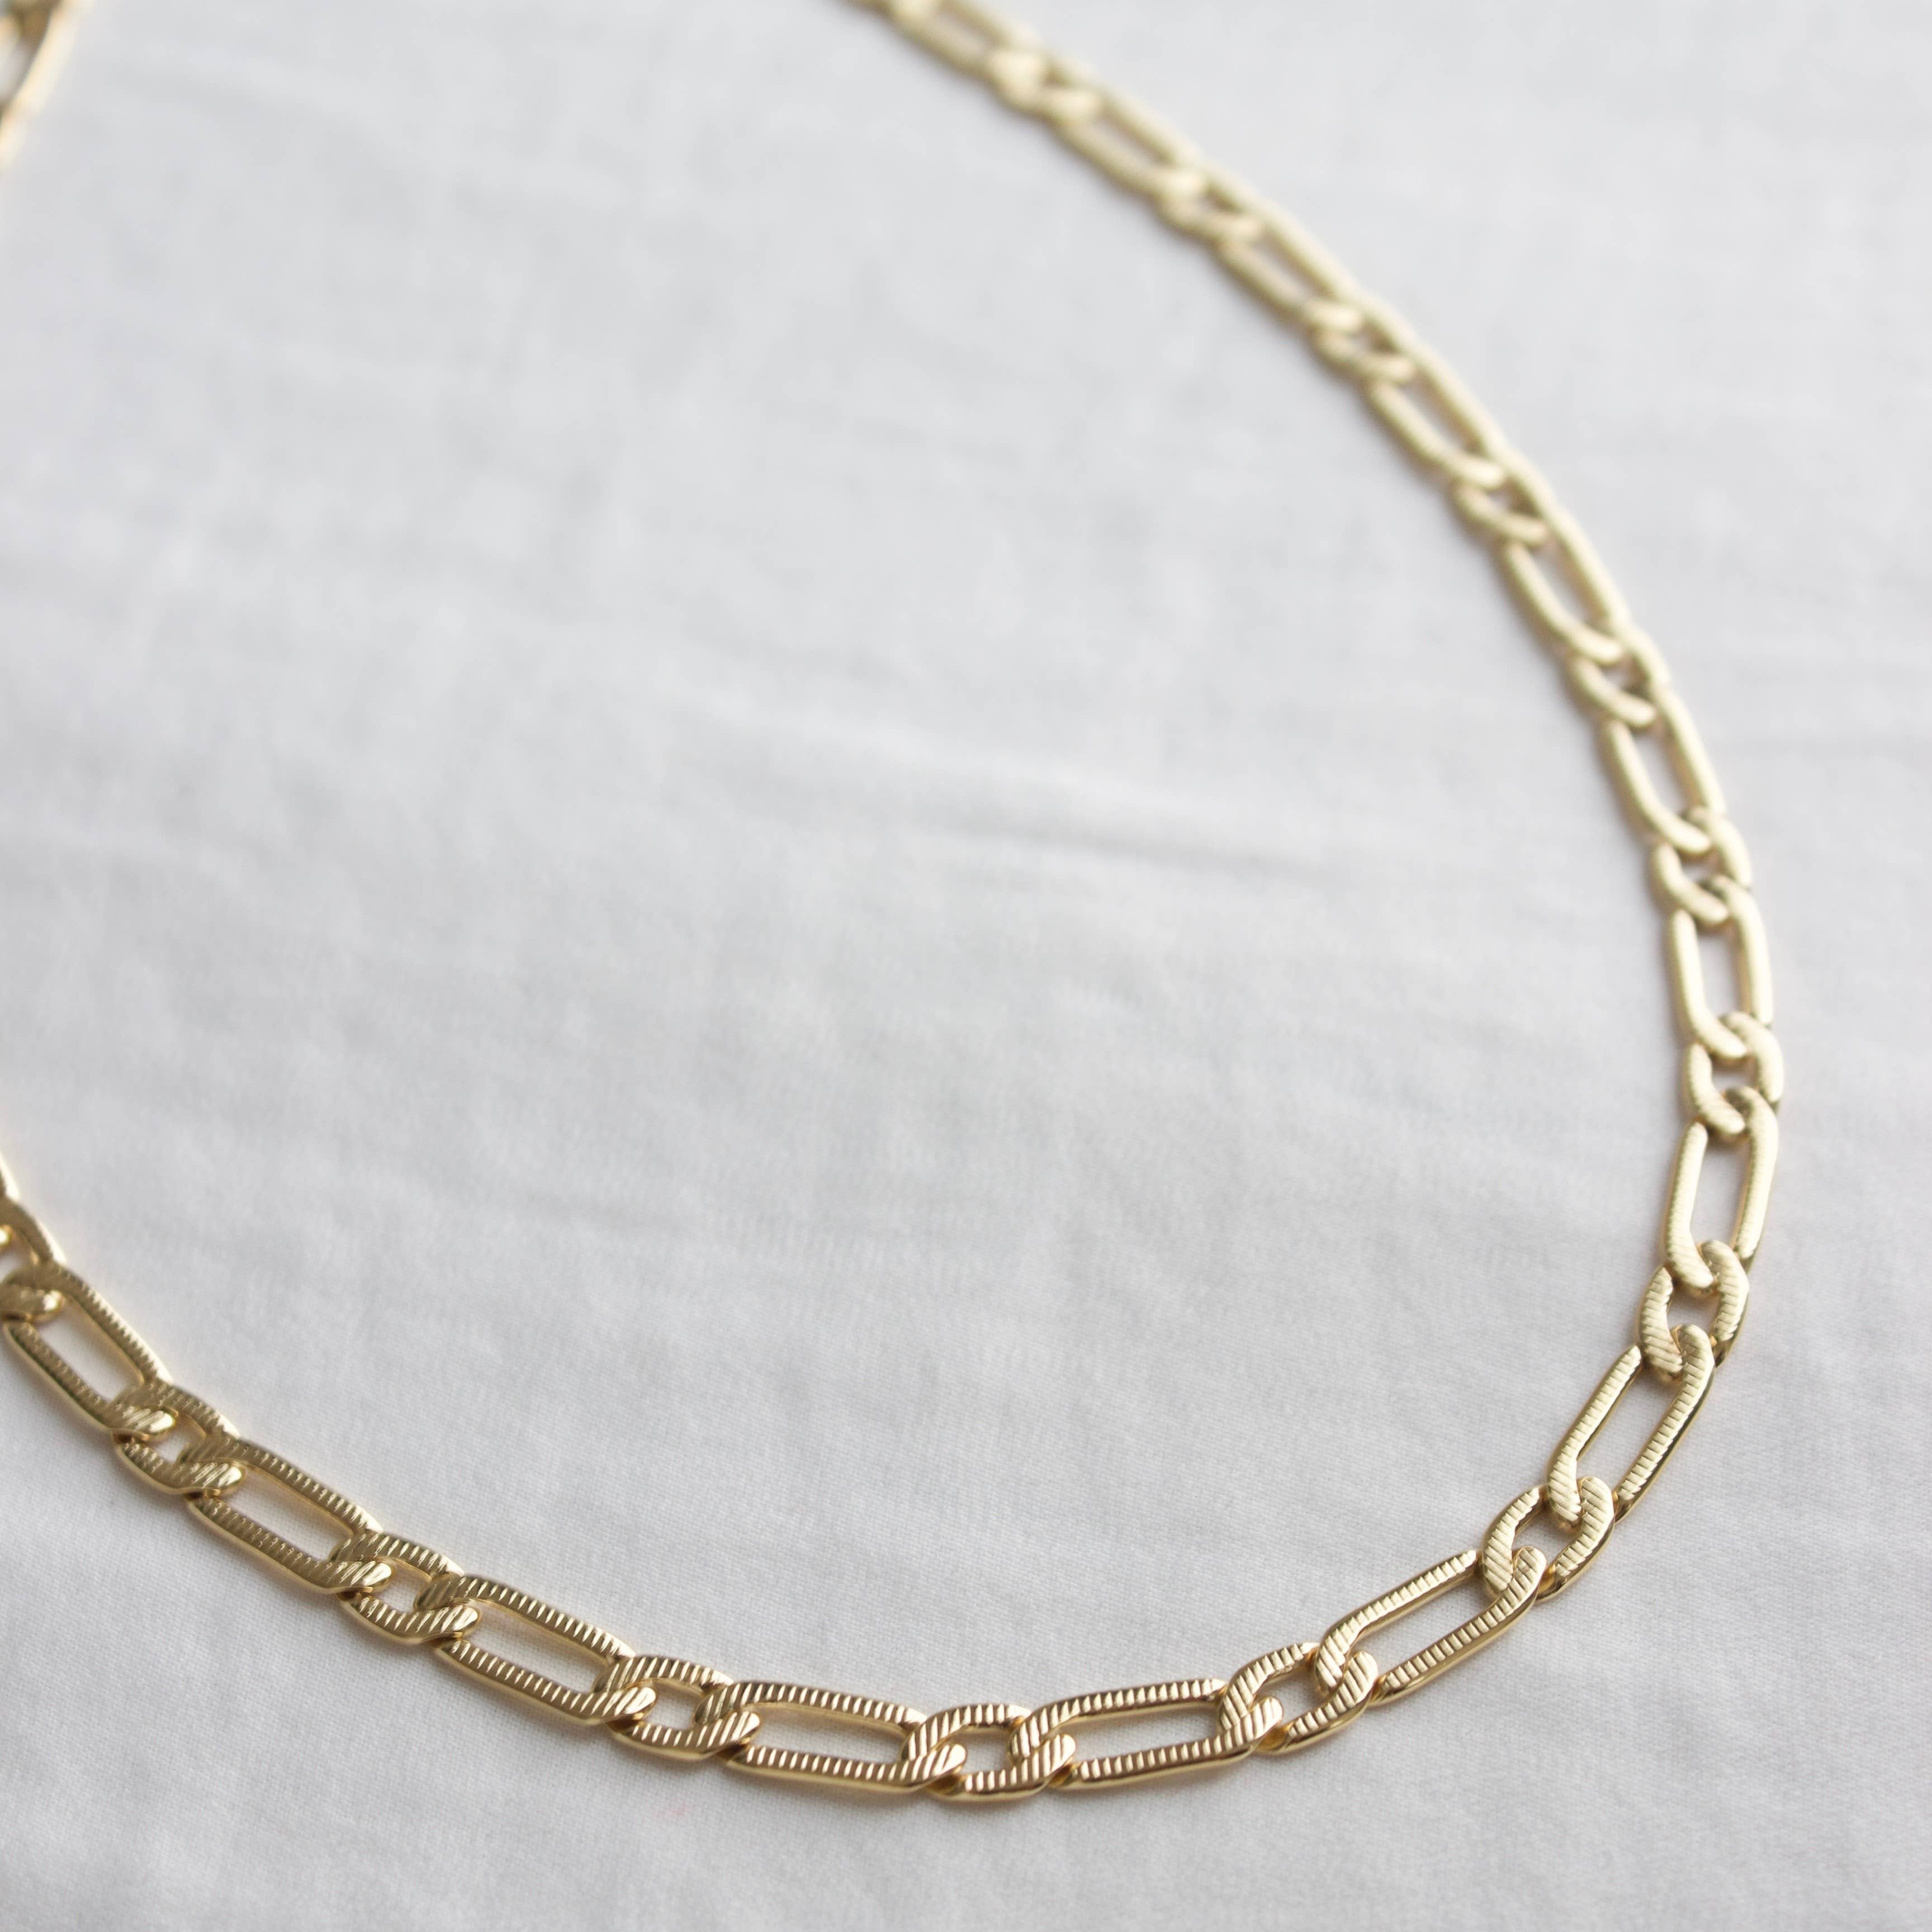 24kt Gold Plate Cleopatra Chain Layer